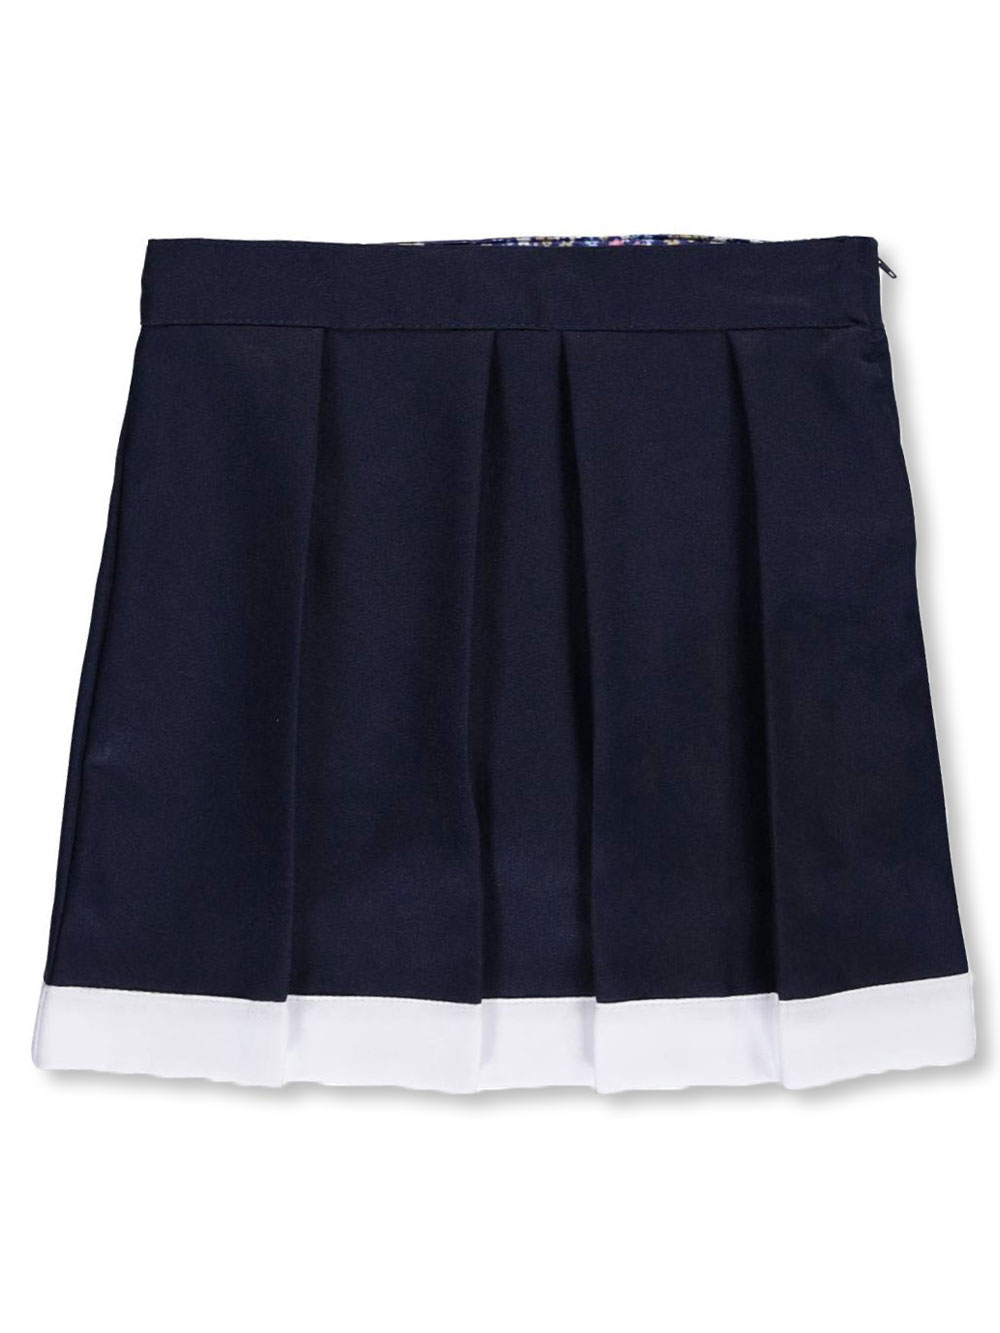 Shorts and Skorts Pleated Skirt